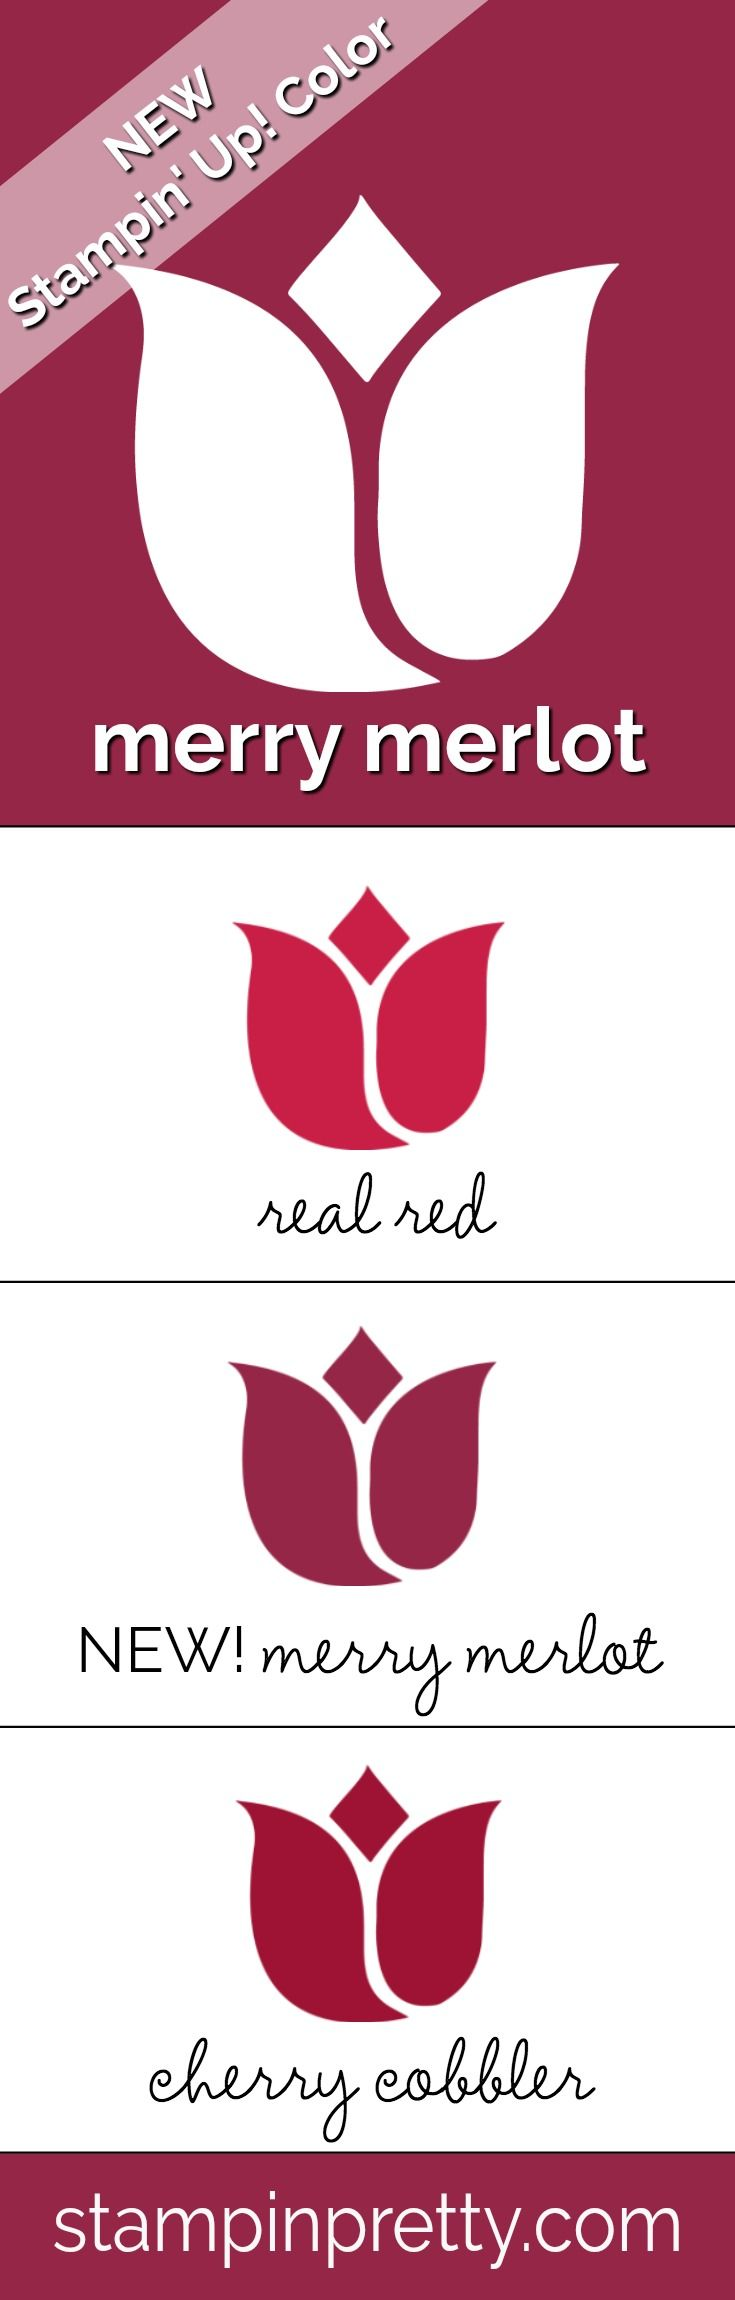 How Do the NEW Colors Compare | Pinterest | Merry, Cards and Rubber ...